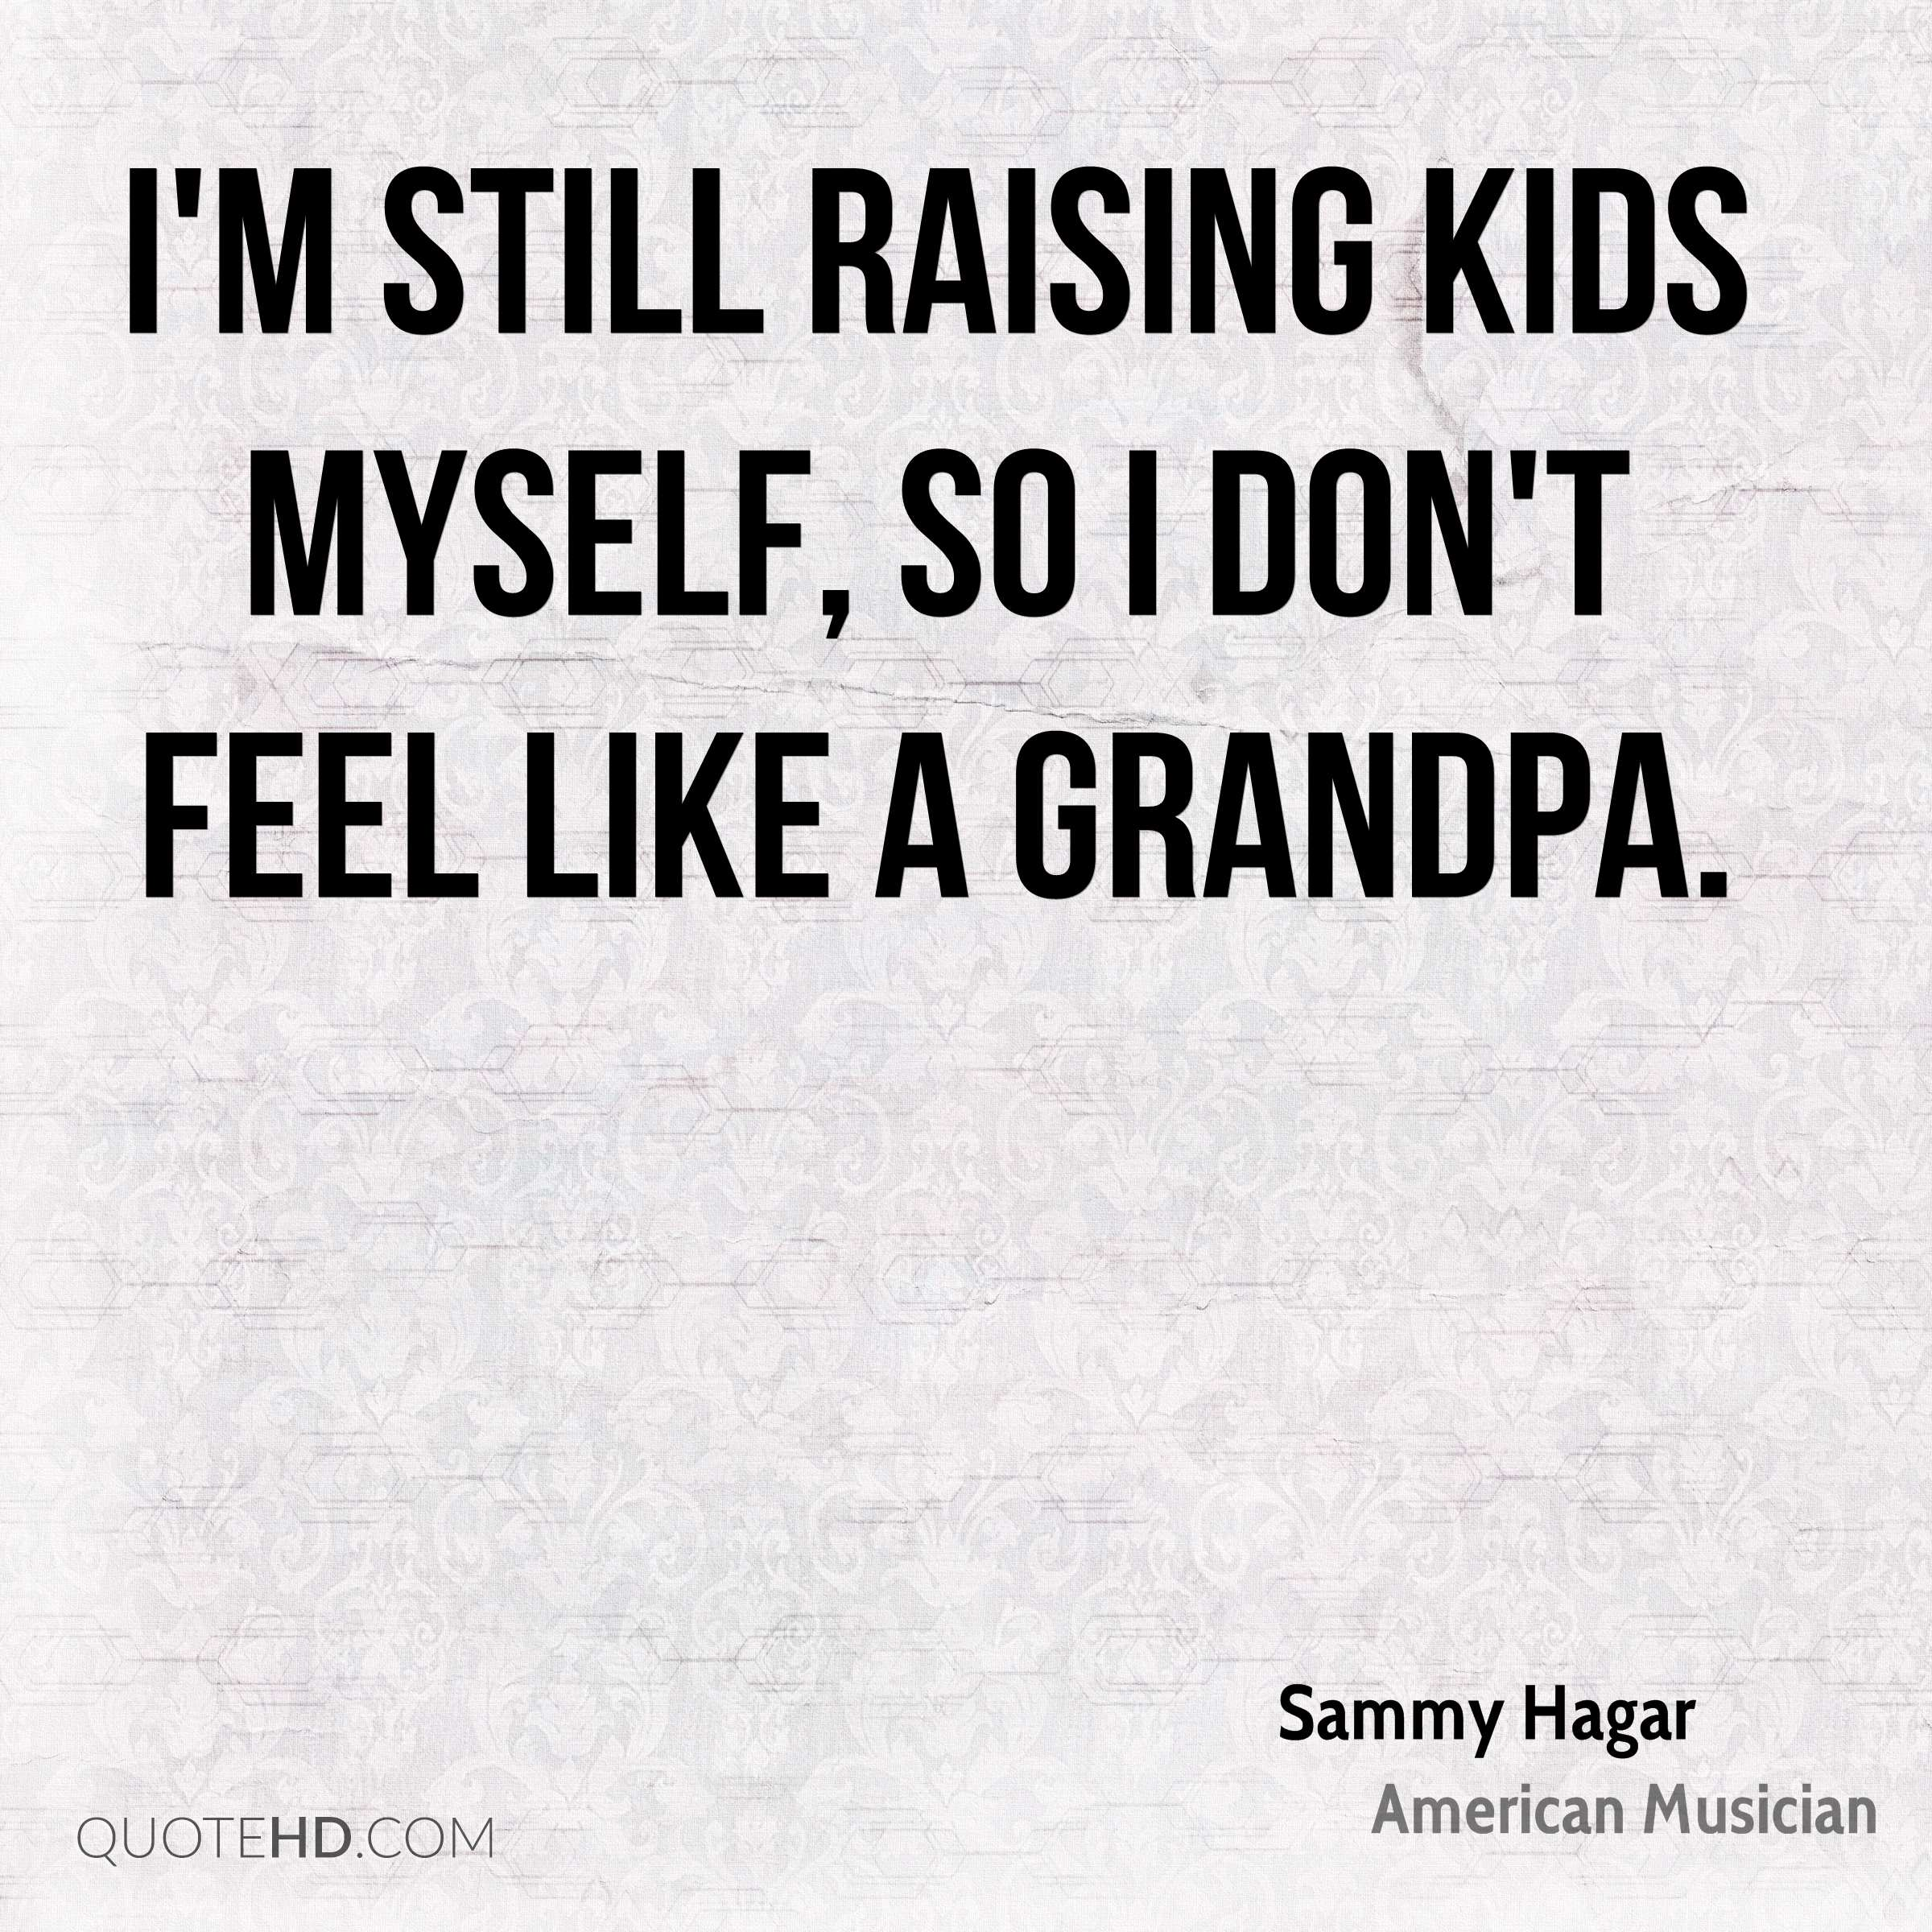 Quotes For Grandpa Grandpa Quotes  Page 1  Quotehd